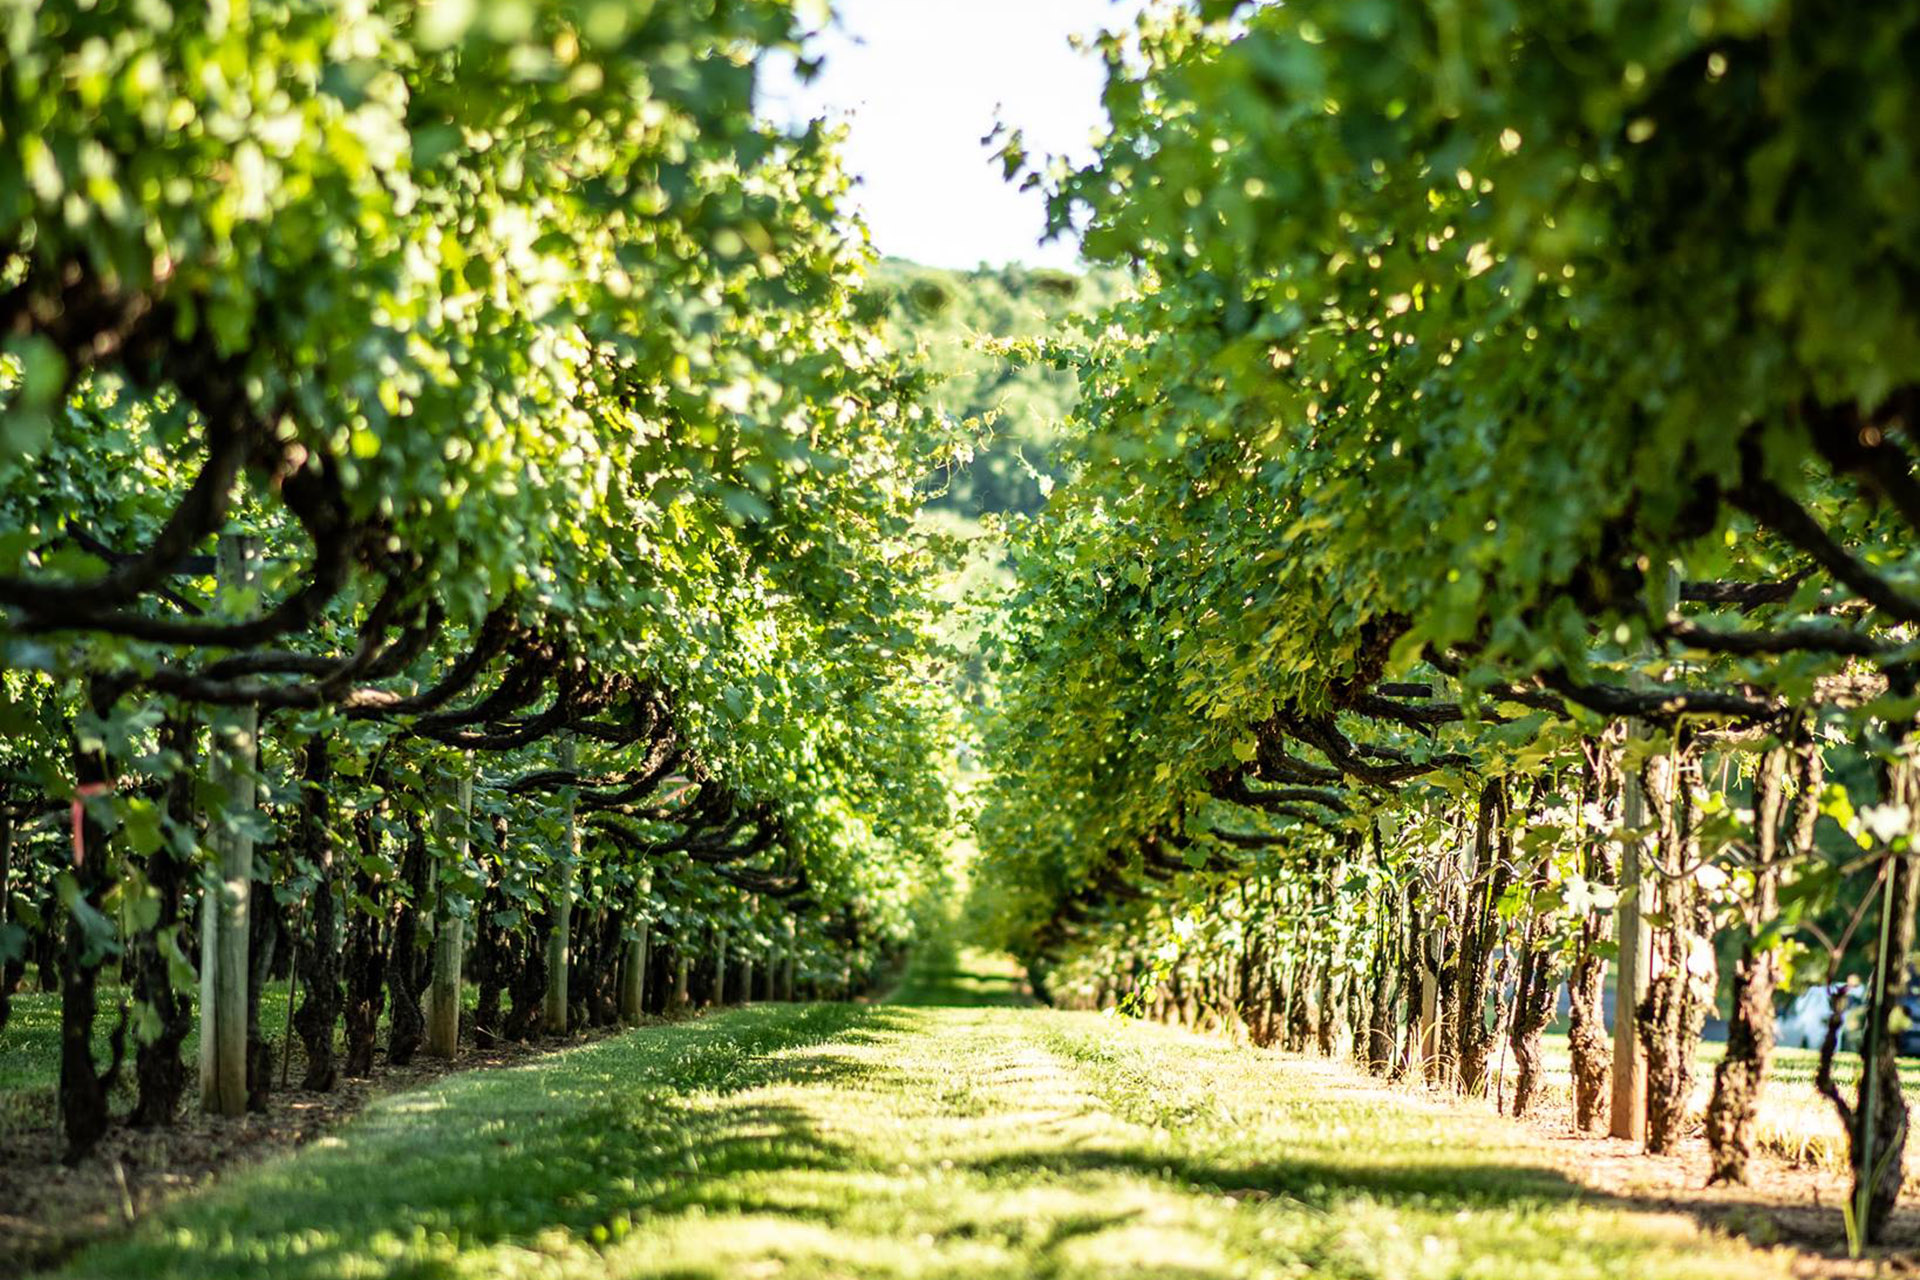 Among the vines at Horton Vineyards